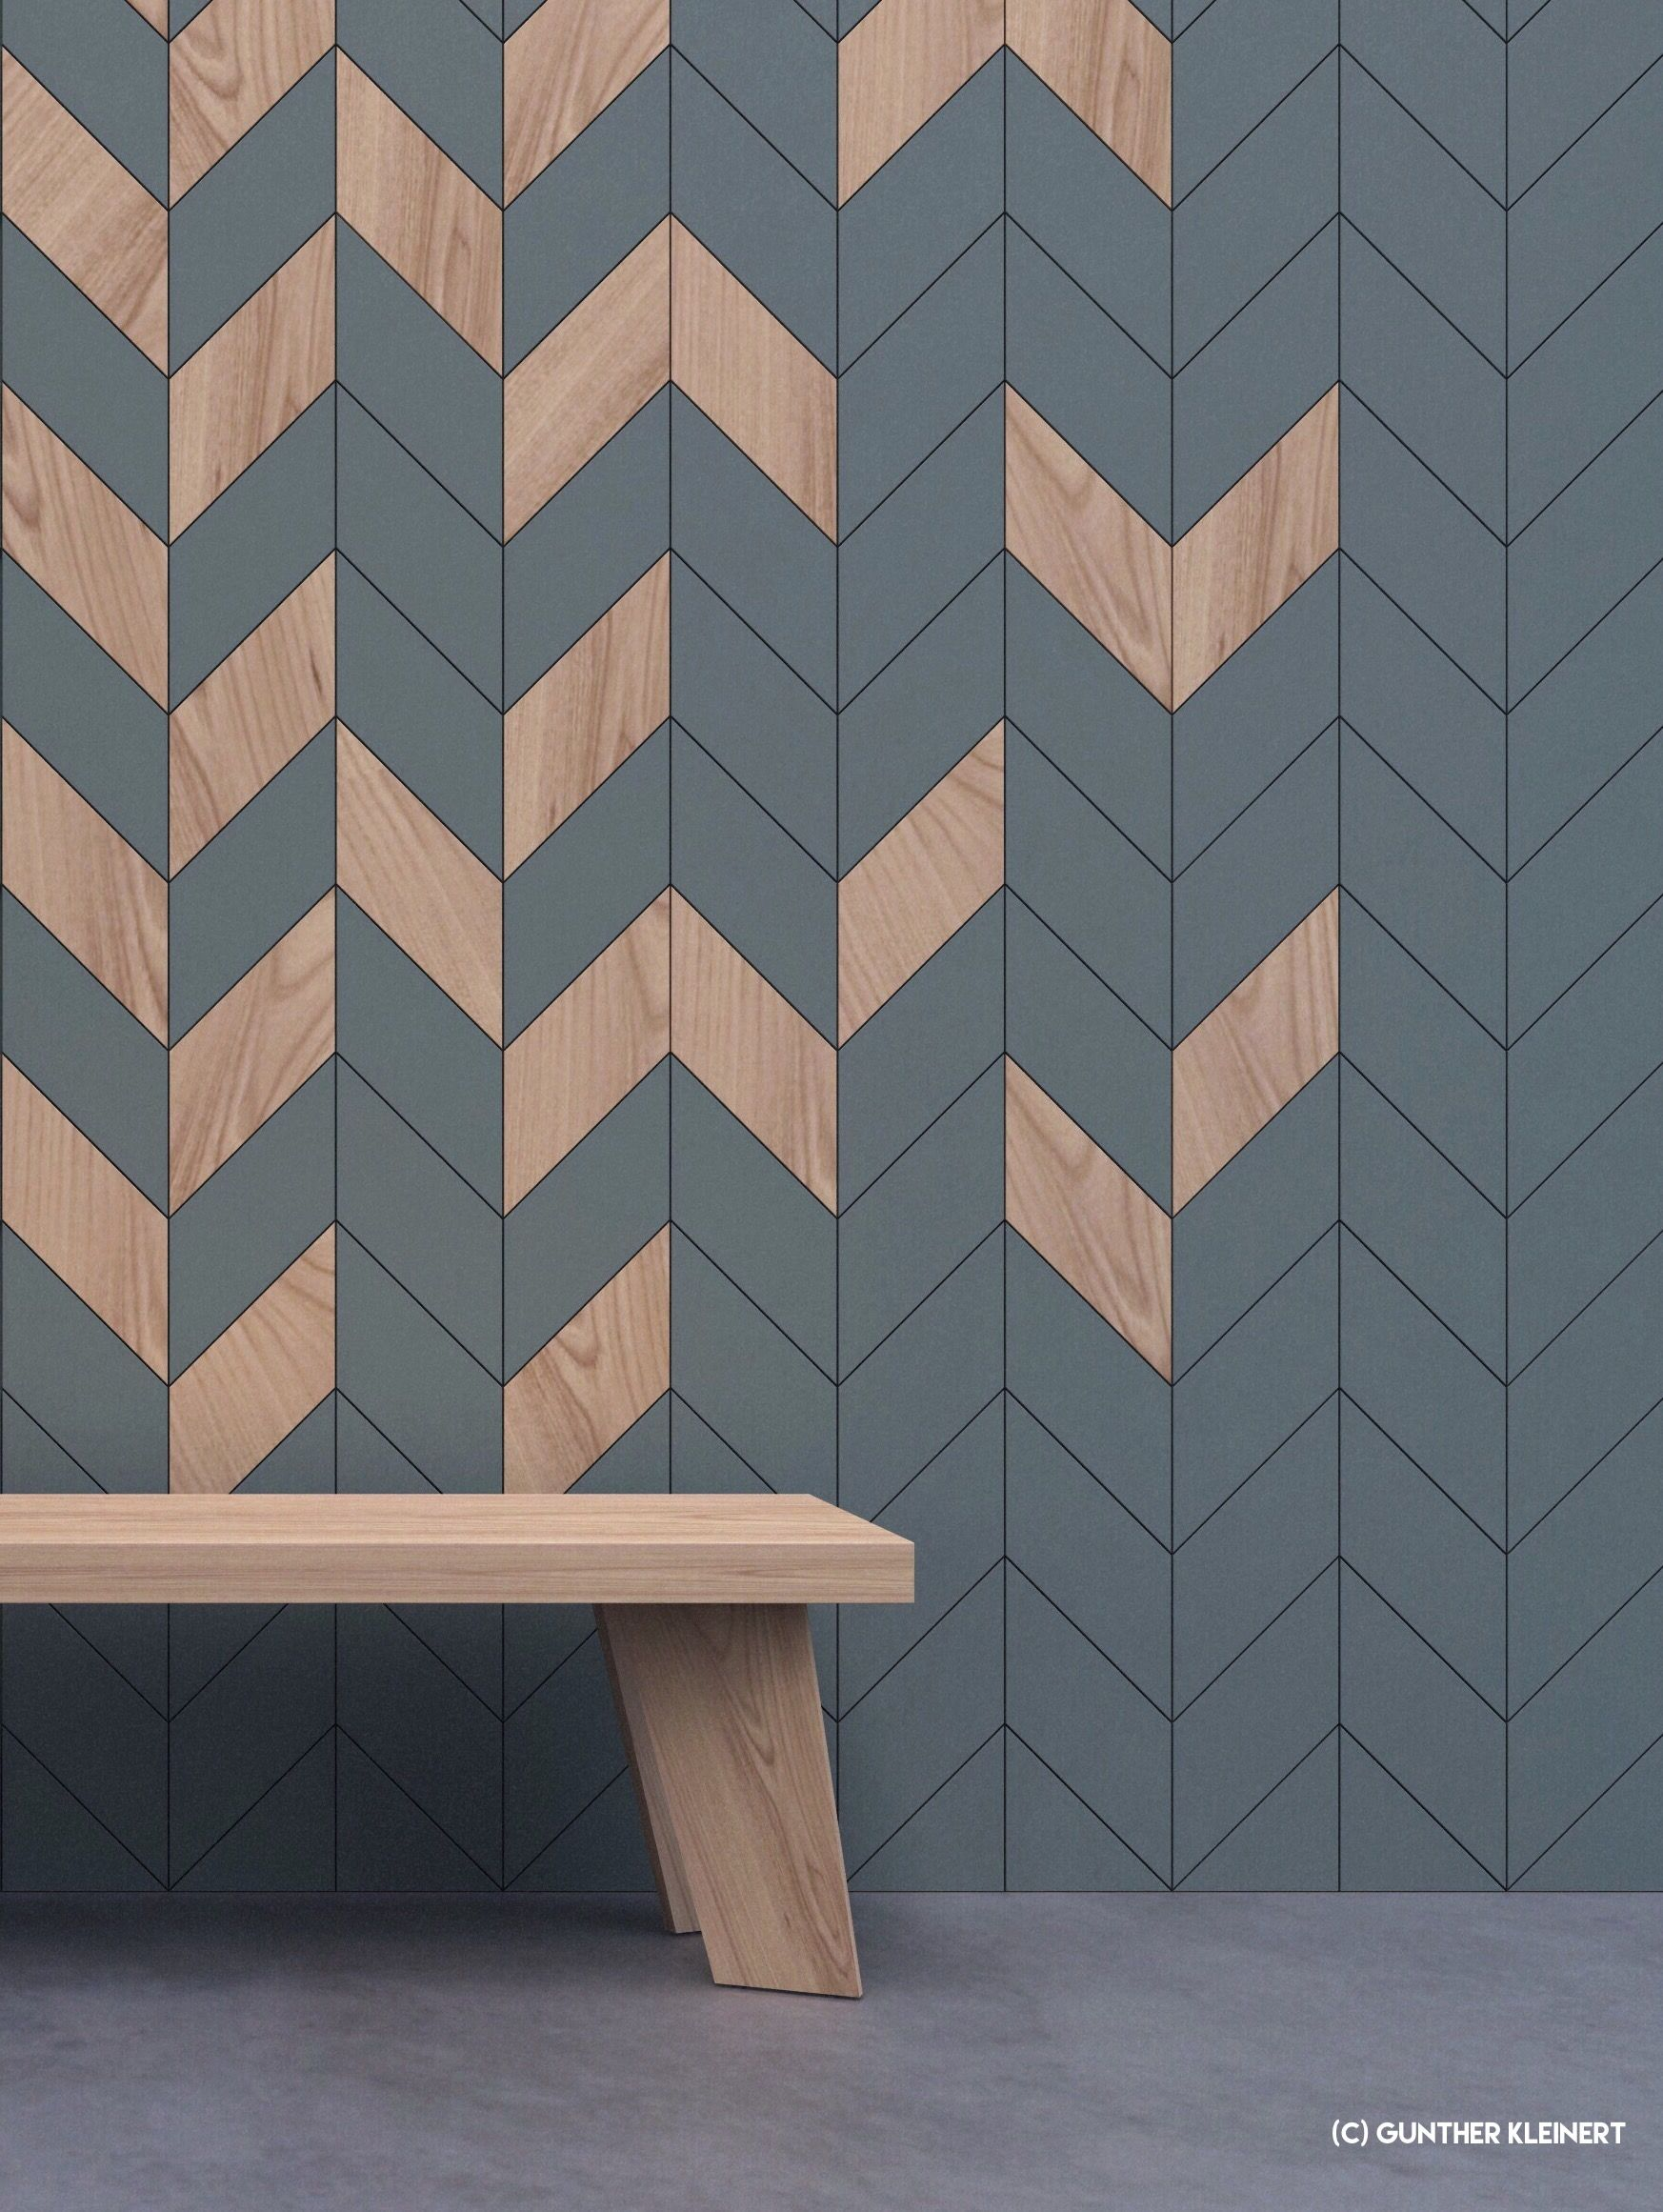 Wall Tiles Pattern Www Guntherkleinert De